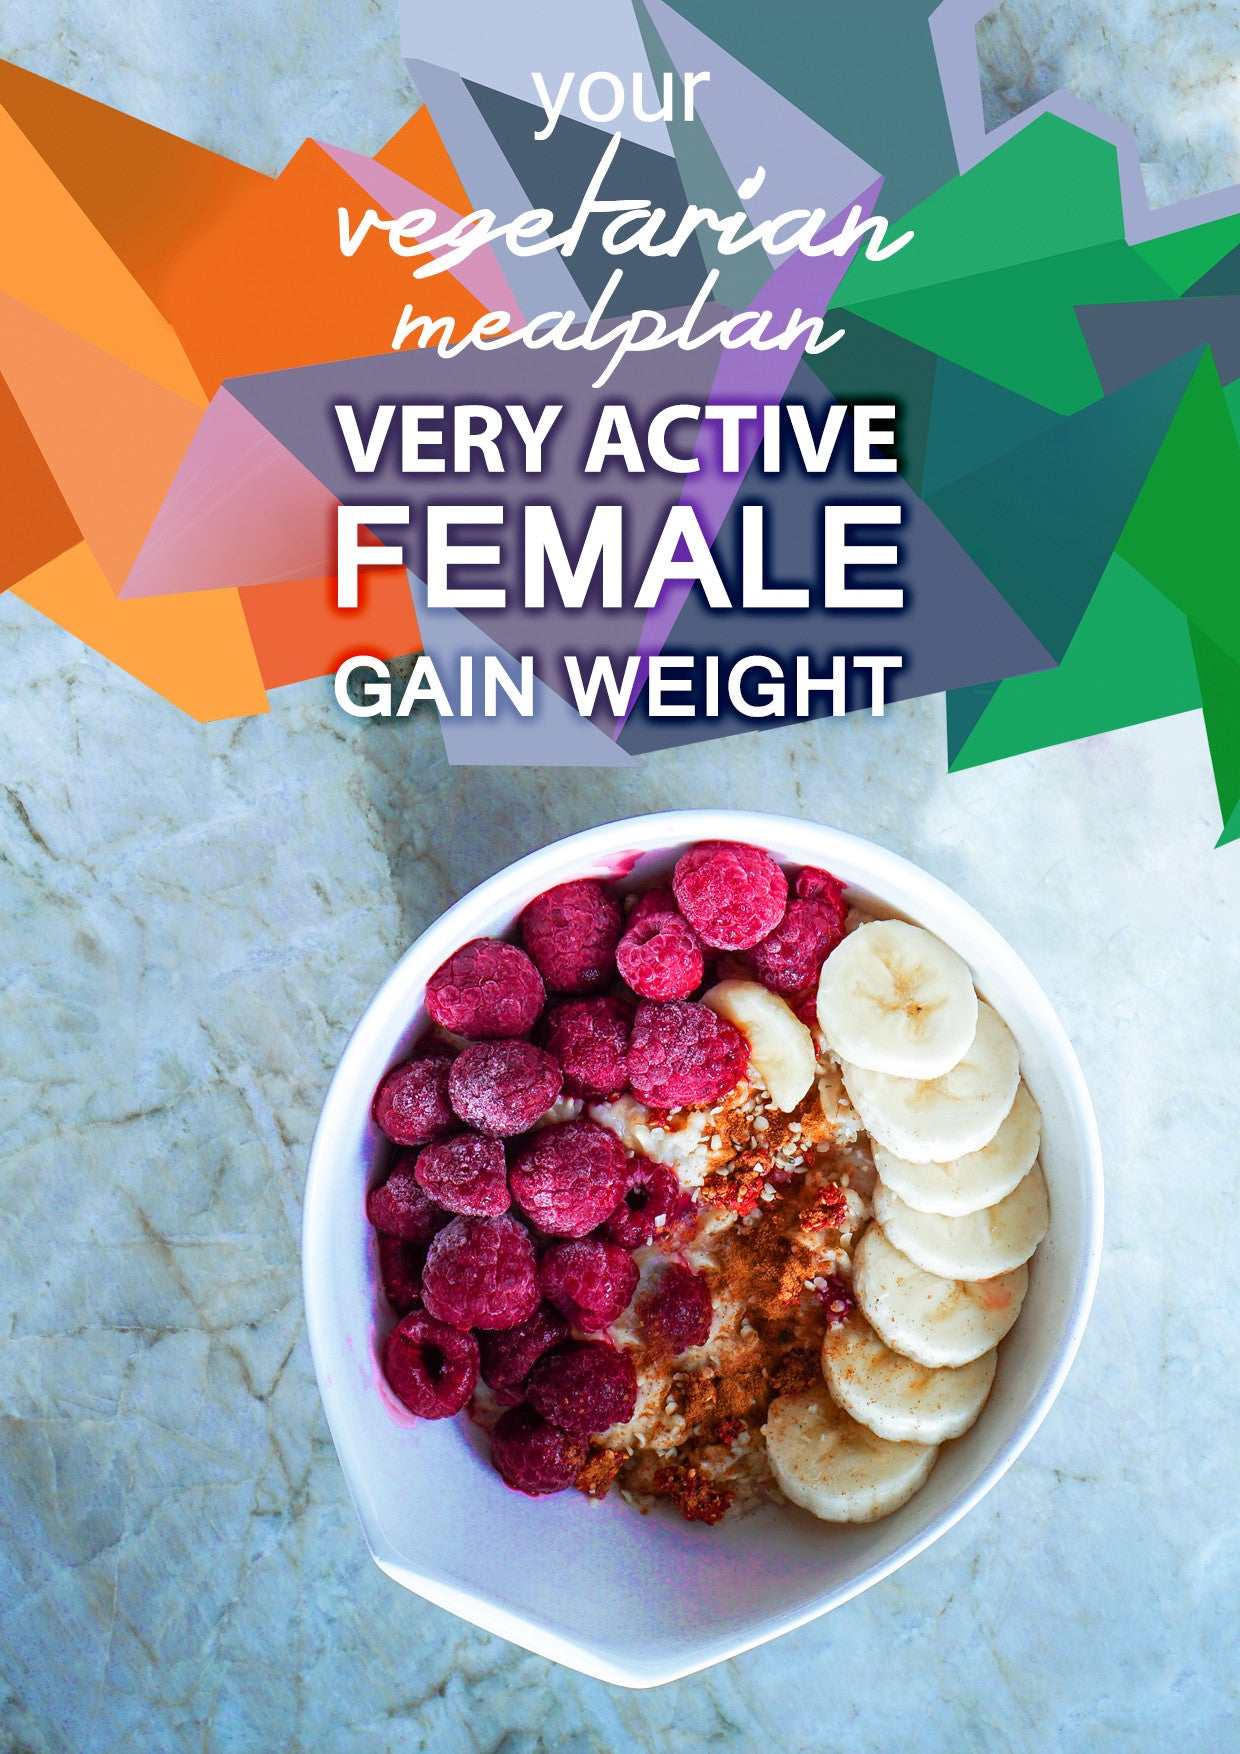 Vegetarian Very Active Female - Gain Weight